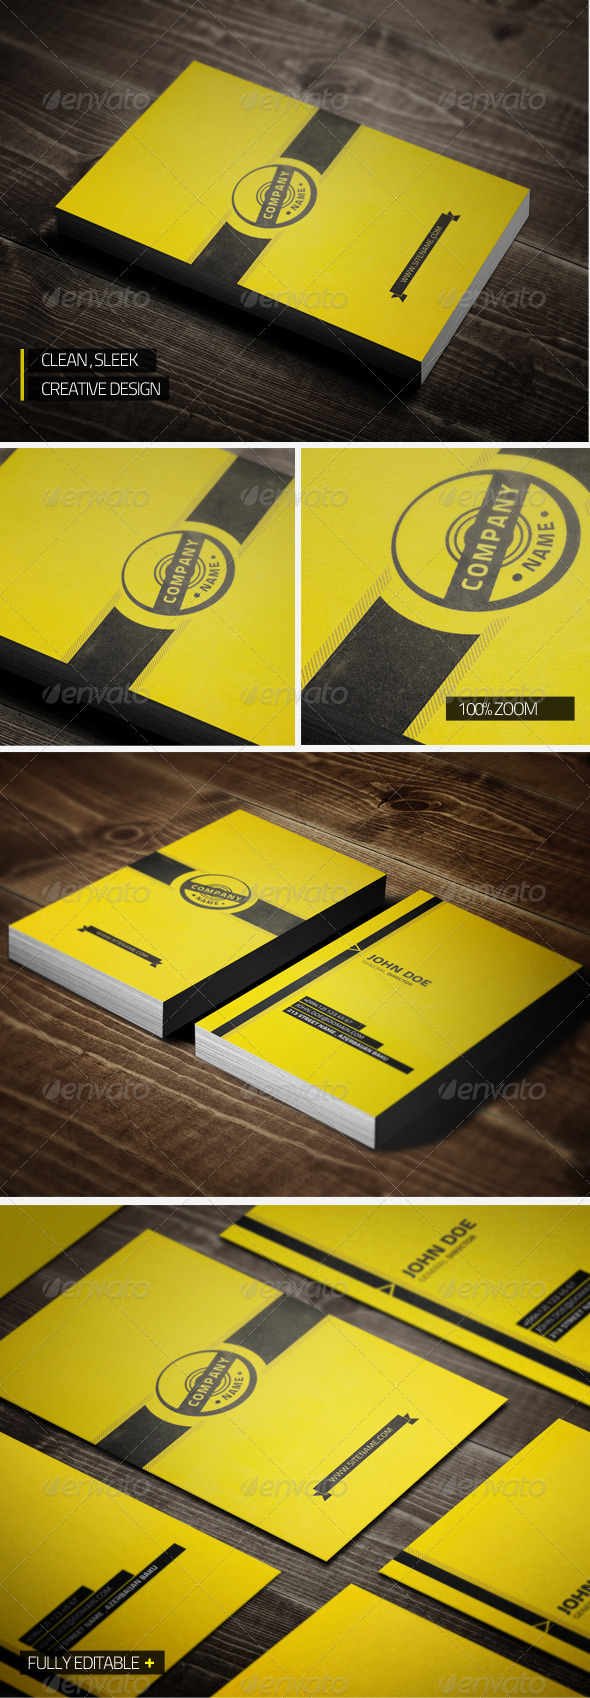 GraphicRiver Creative Business Card 3353336